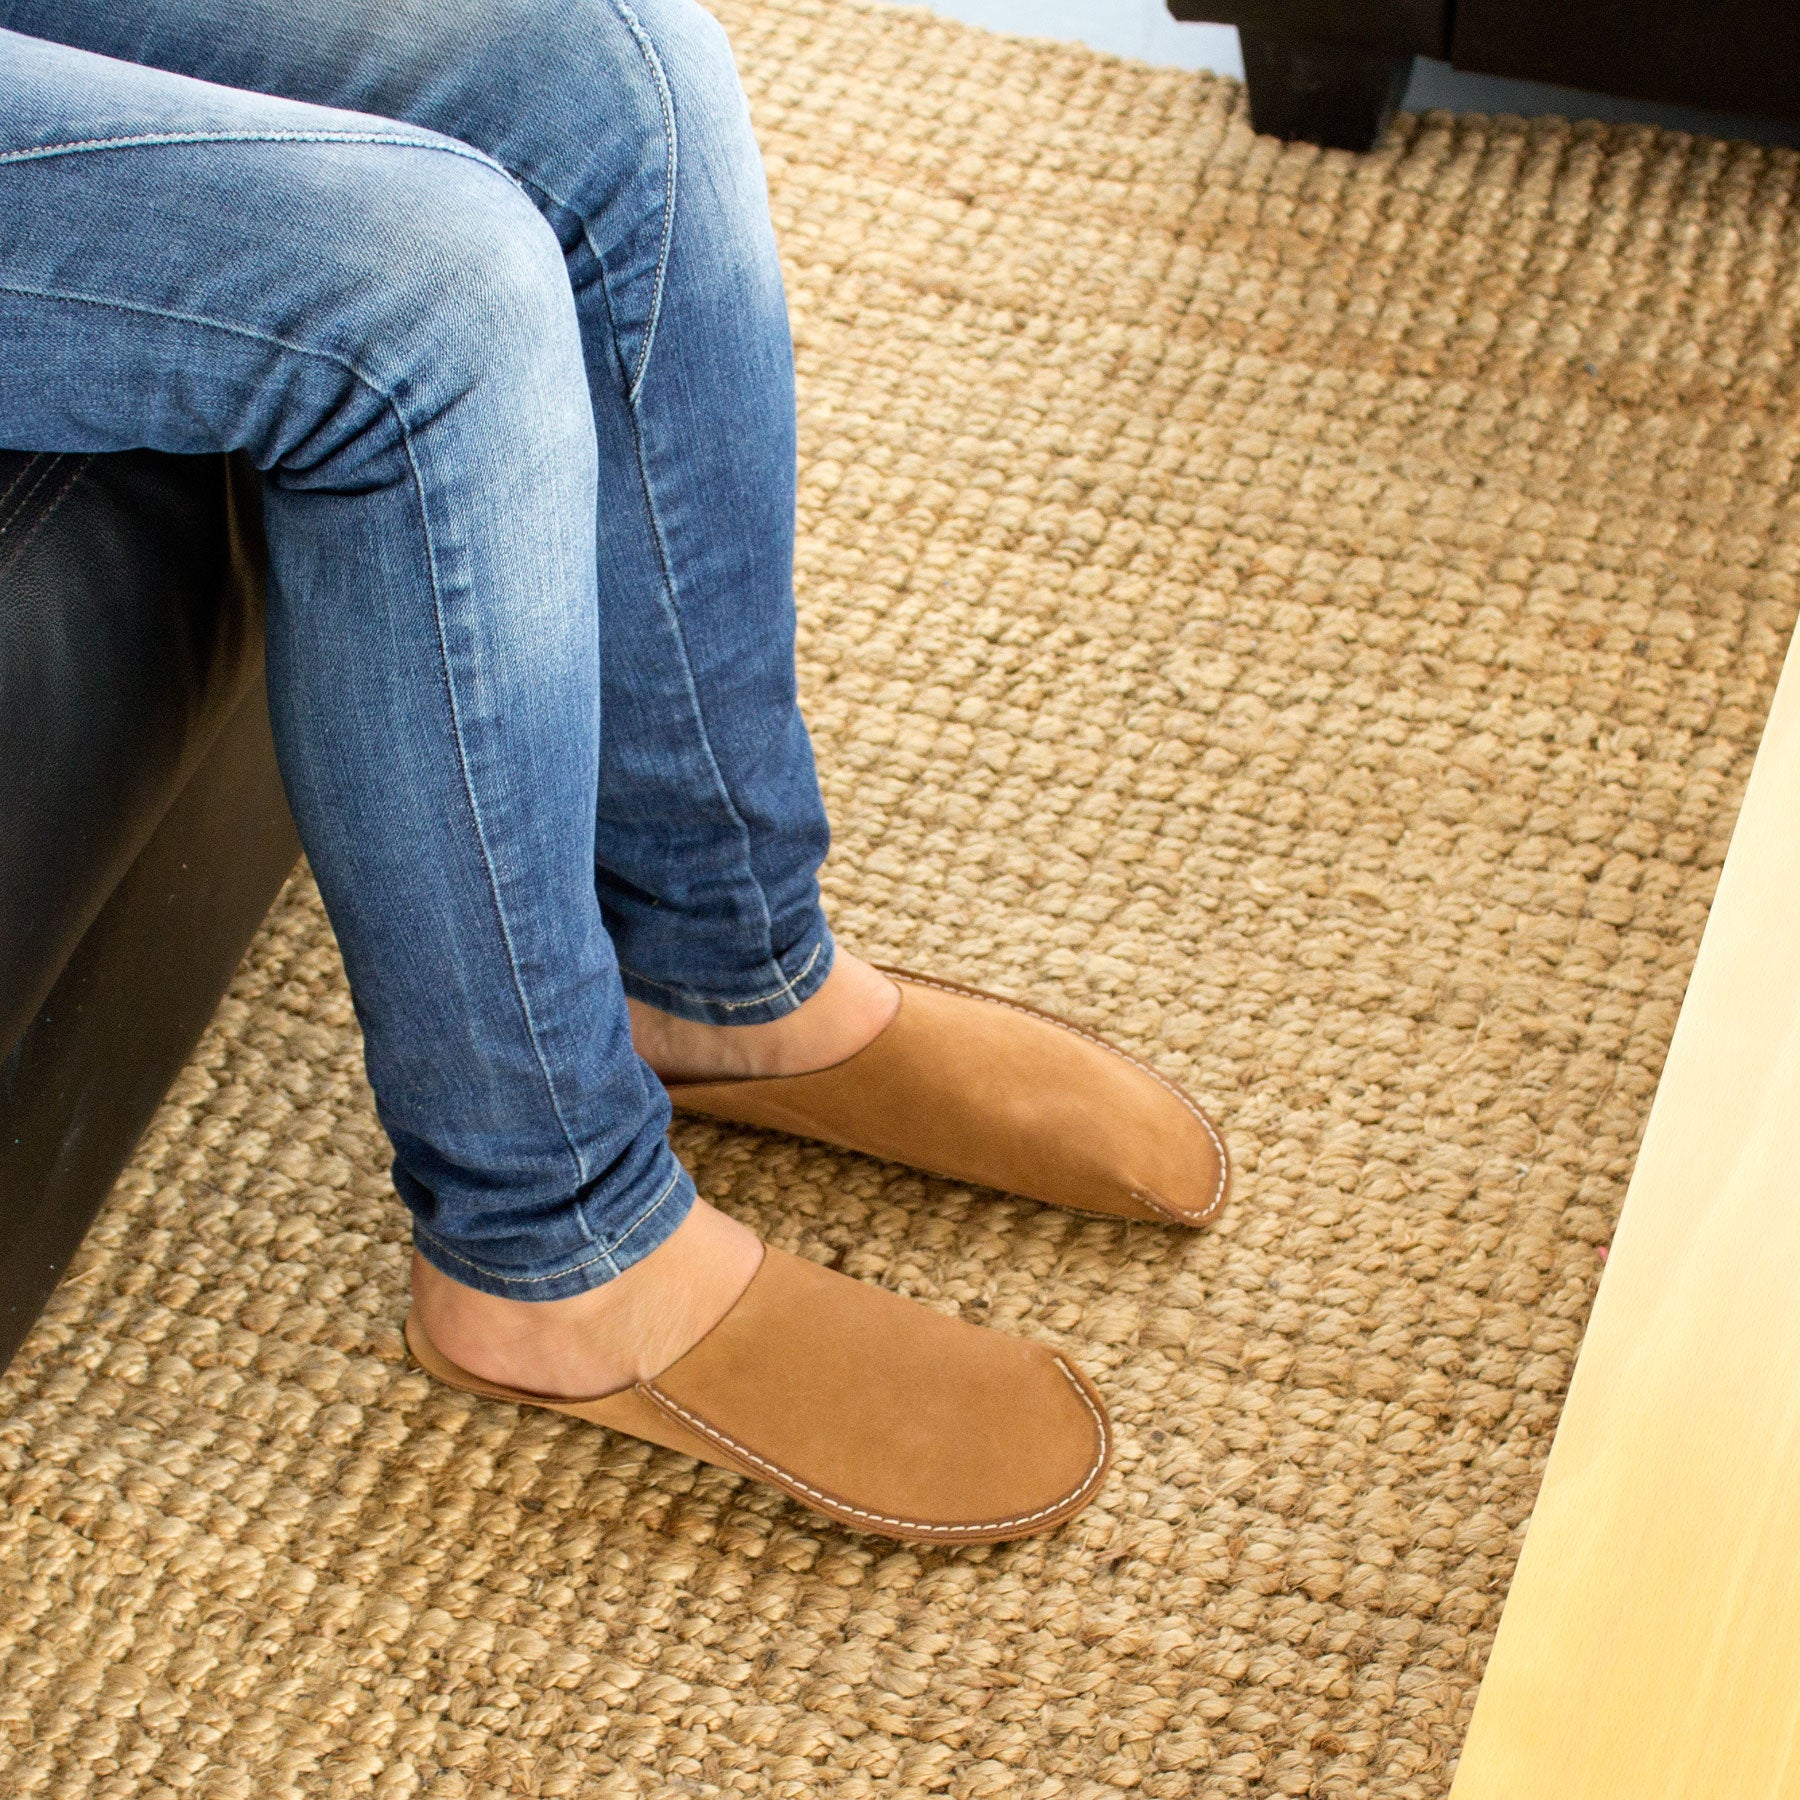 Tan CP Slippers Minimalist slippers shoes for man and woman at home